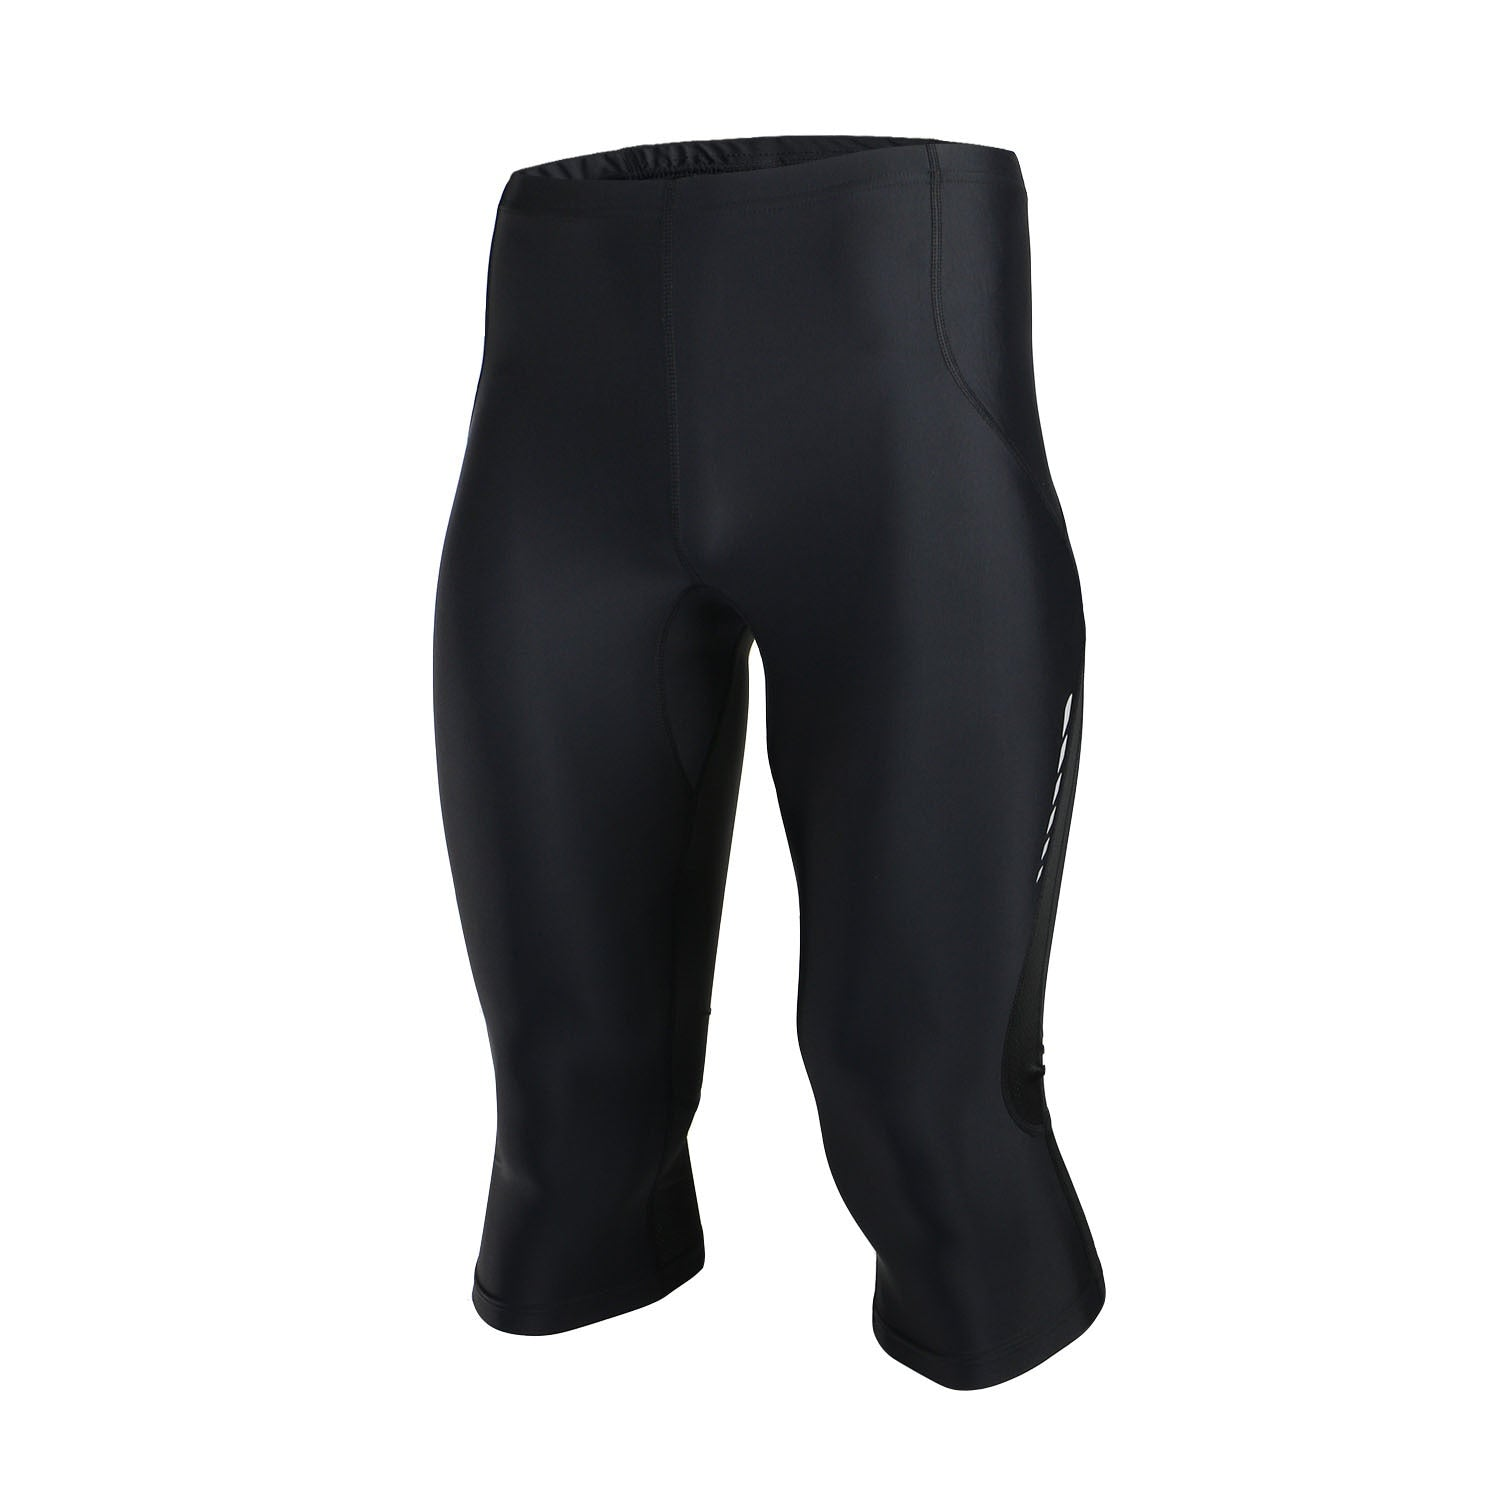 Reflective Running Tights 3/4 Length